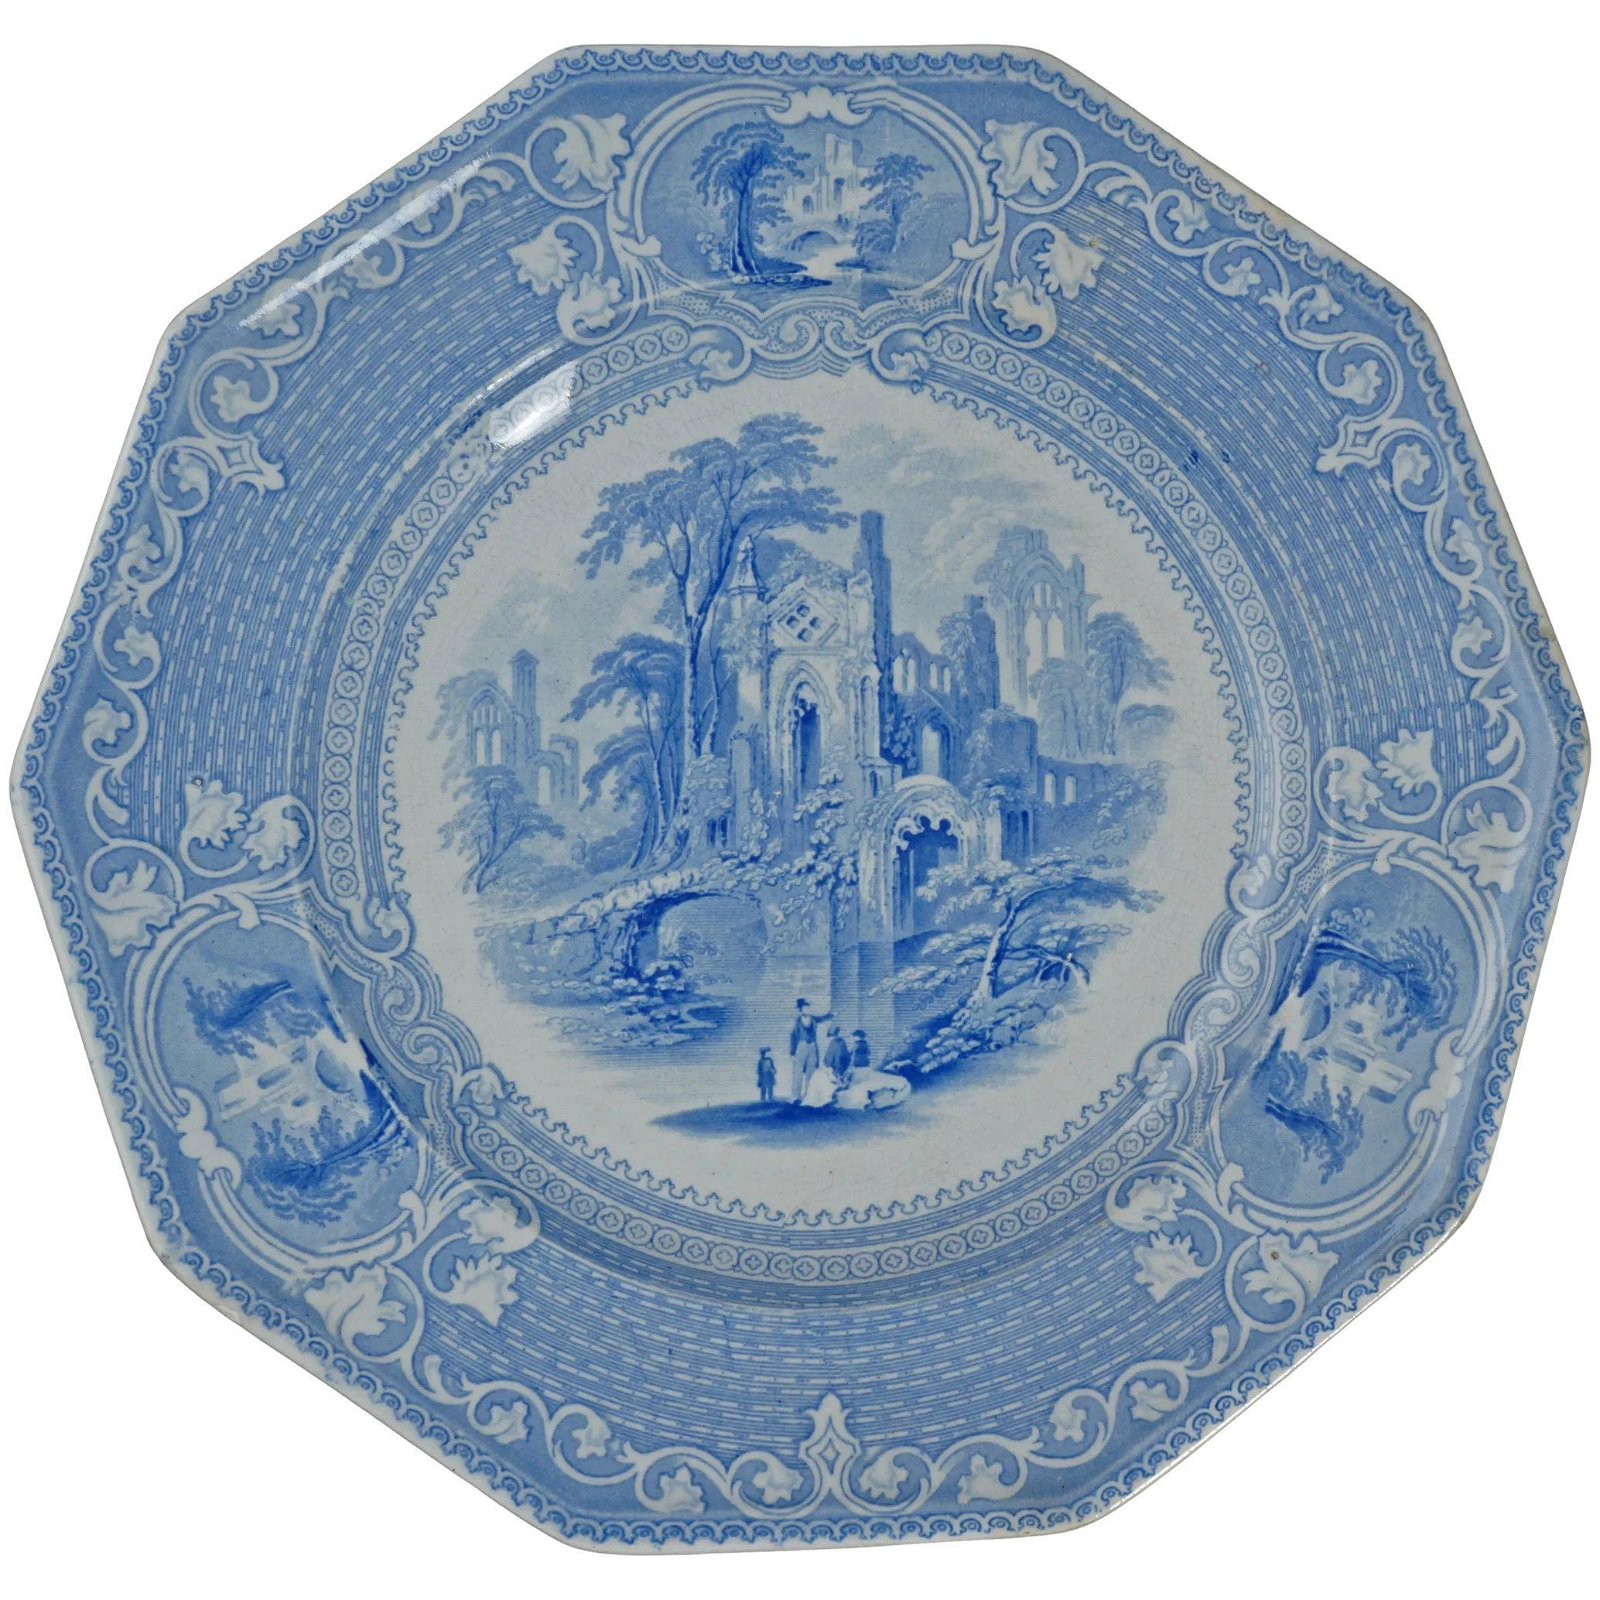 19th C Staffordshire Transferware Plate Abbey Pattern